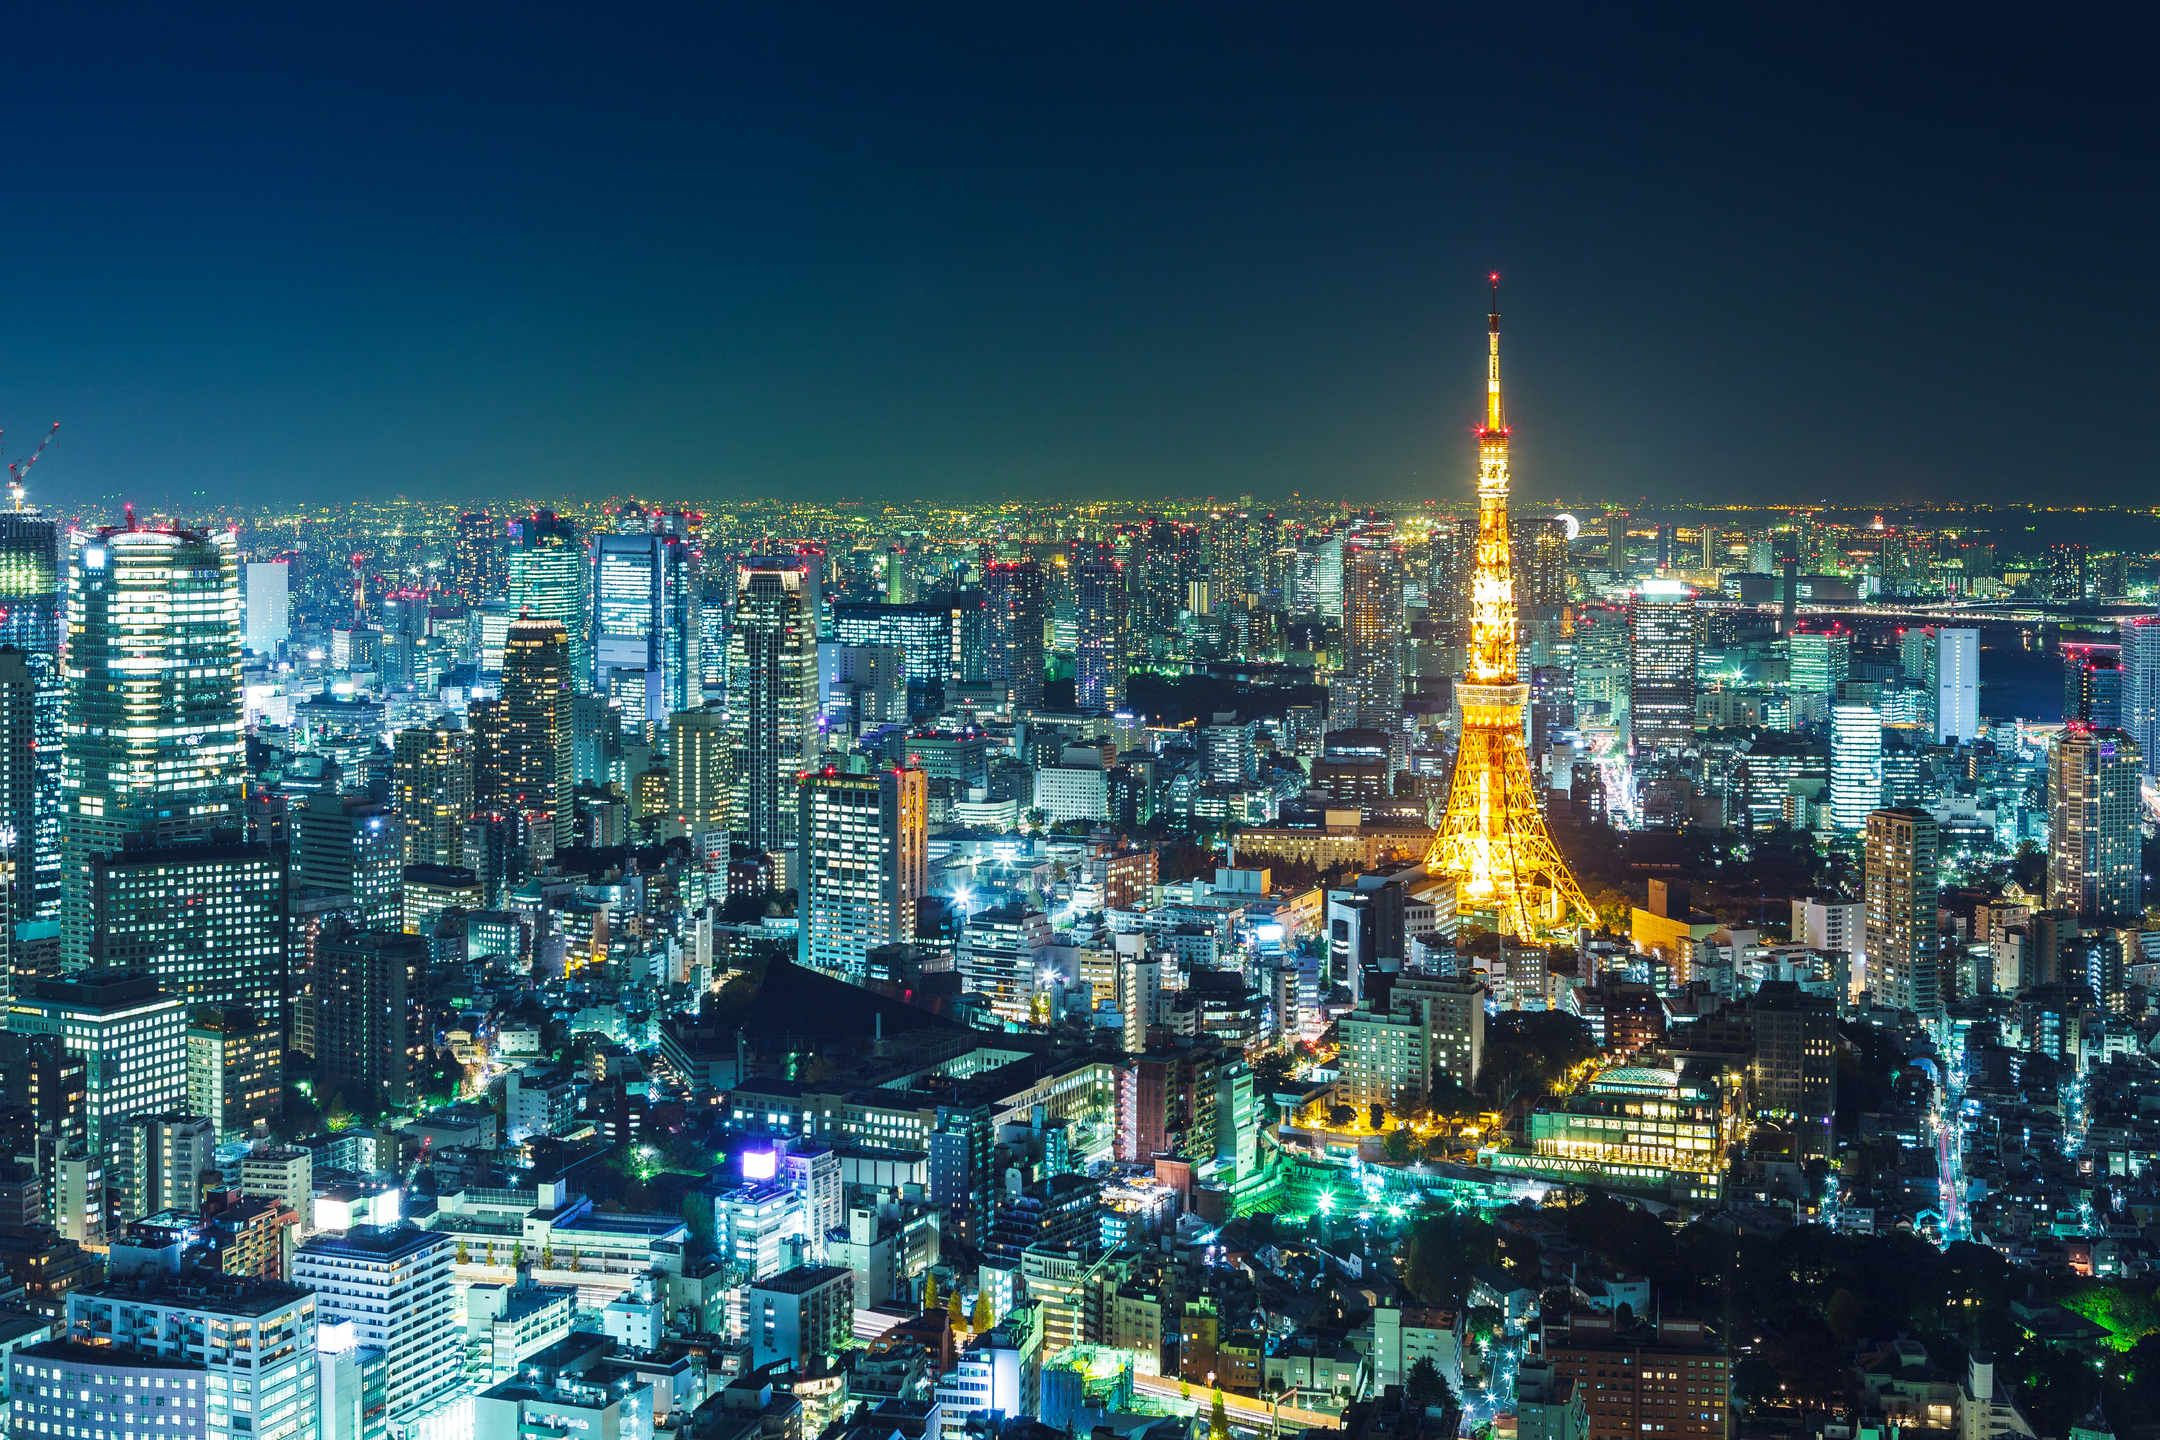 Tokyo Skyline At Night Tokyo Contains Over 100 Universities And Colleges Giving It The World S Highest Concentration Of Higher L Tokyo Skyline Skyline Tokyo